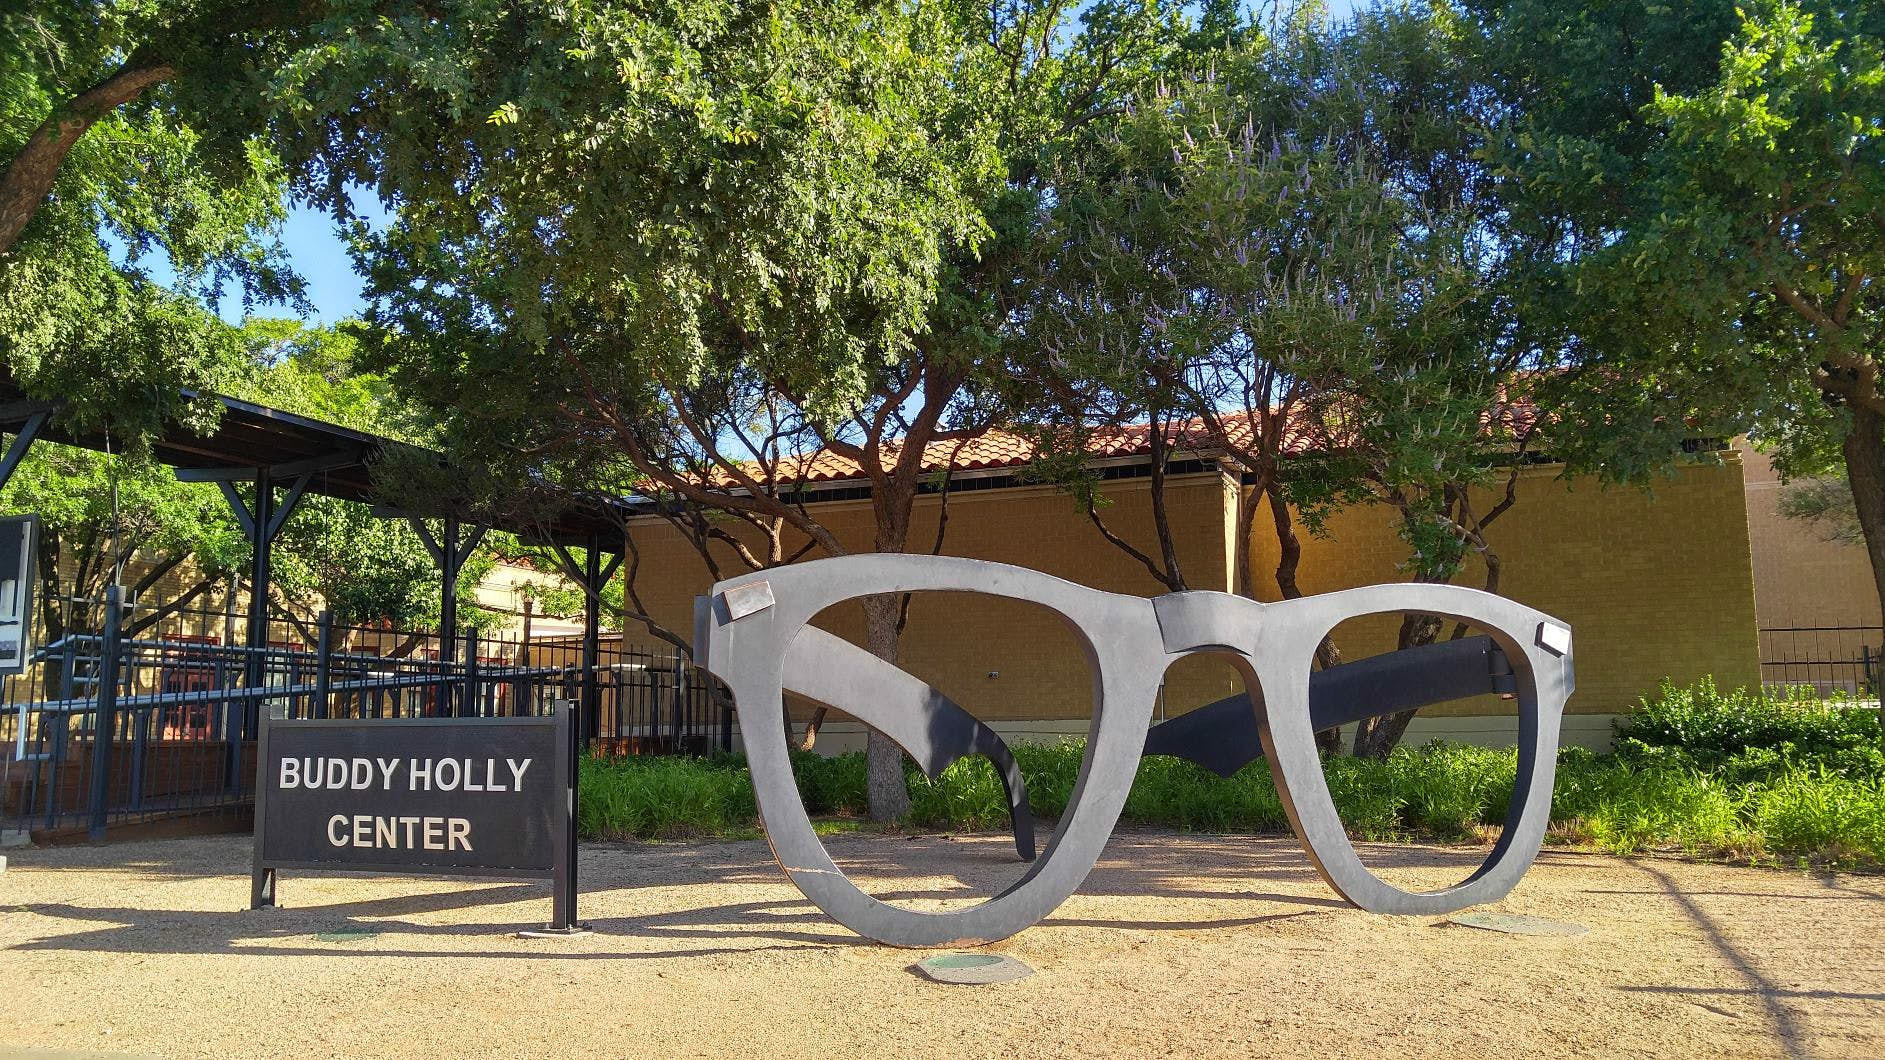 A large pair of Buddy Holly's signature sunglasses sit outside the Buddy Holly Center. USA museums for music lovers